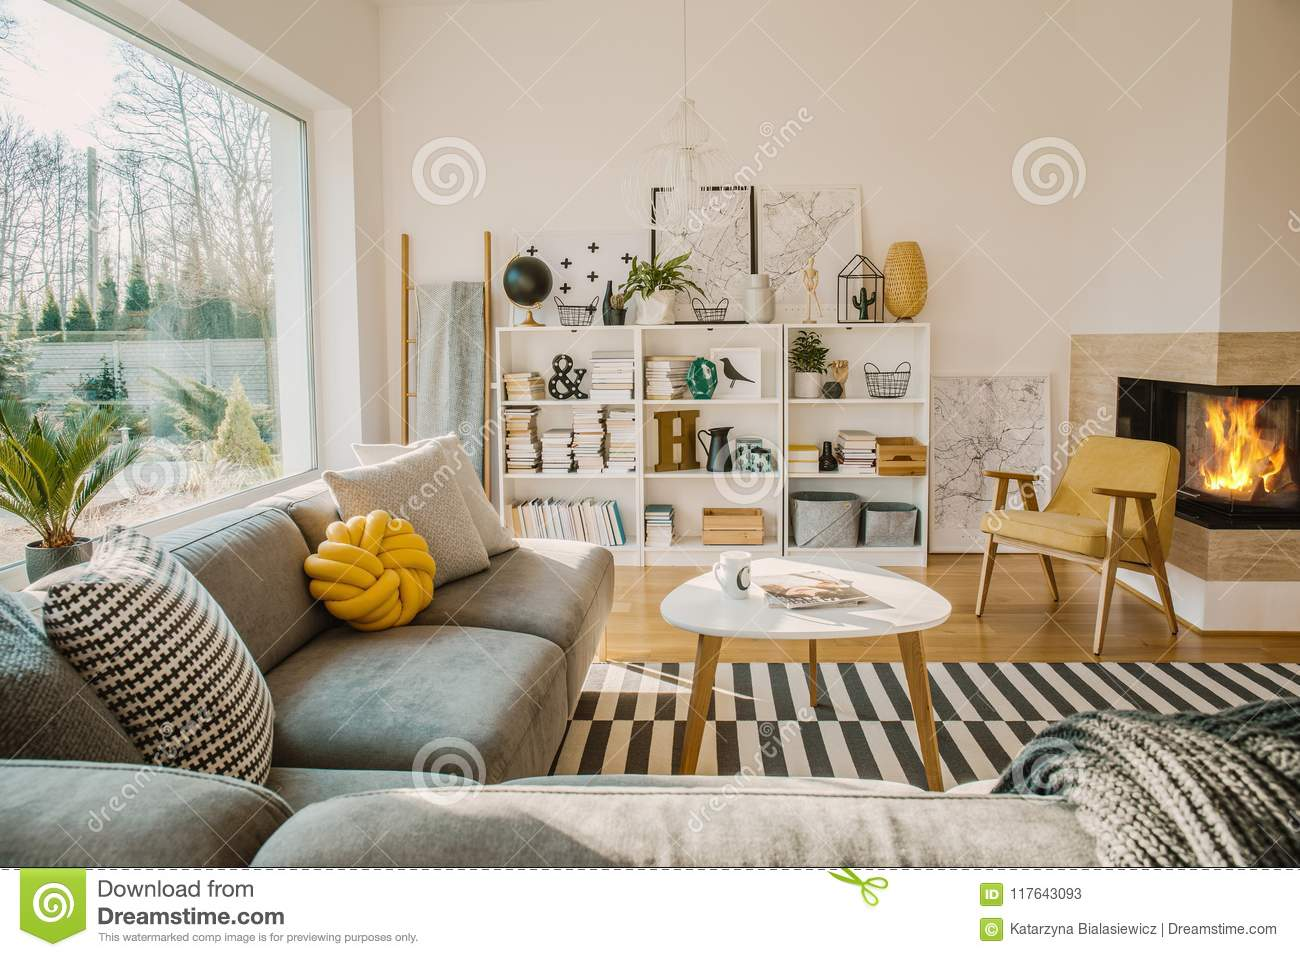 https www dreamstime com white wooden rack books decorations fresh plants simp simple posters bright scandinavian living room interior image117643093